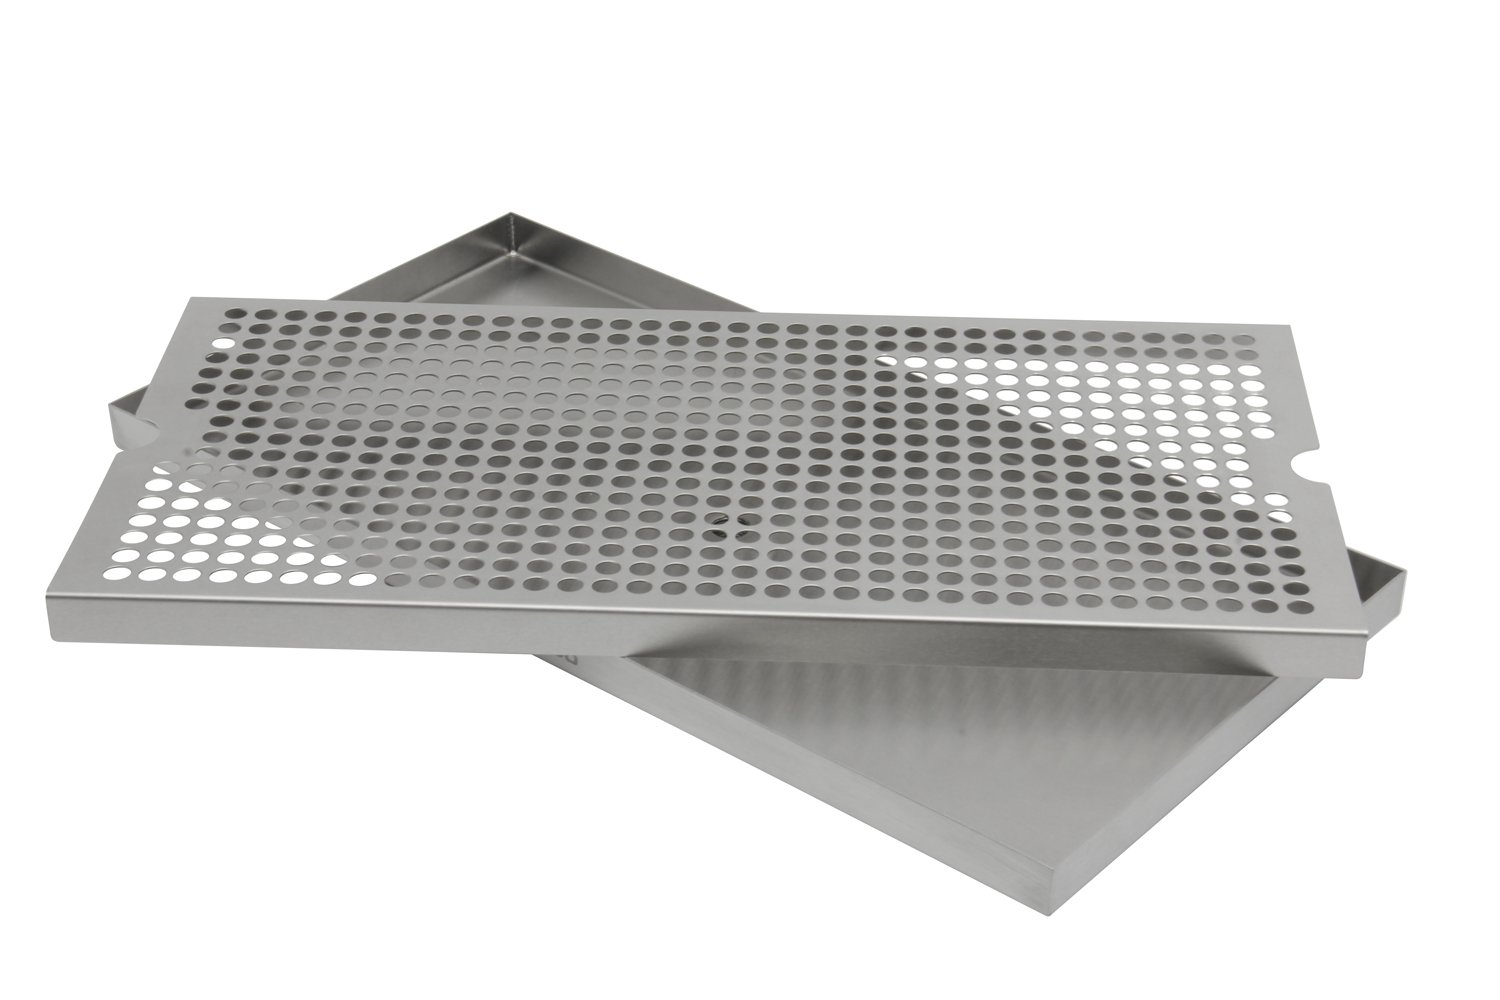 Kegco SESM-189D 18'' x 9'' Surface Mount Drip Tray with Drain by Kegco (Image #2)